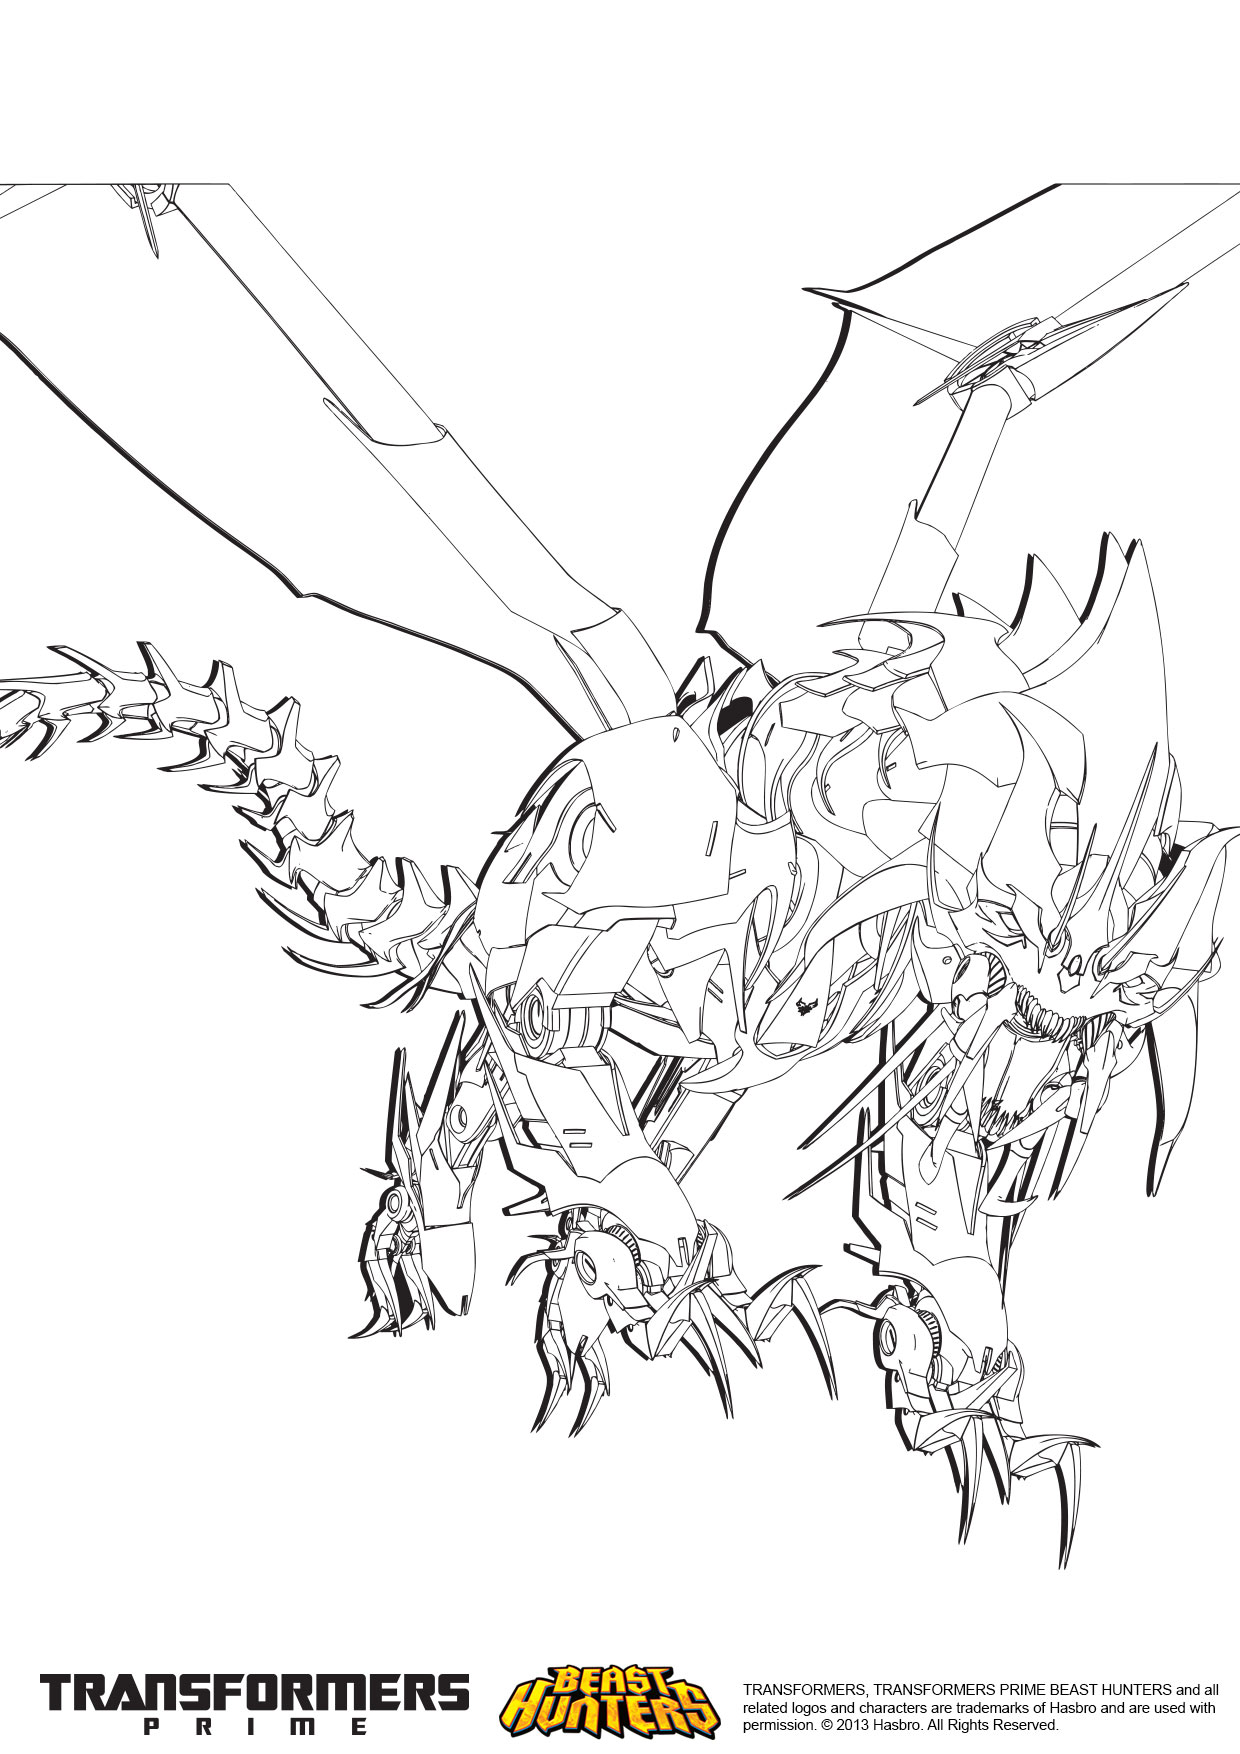 Free predaking coloring pages for Transformers prime beast hunters coloring pages